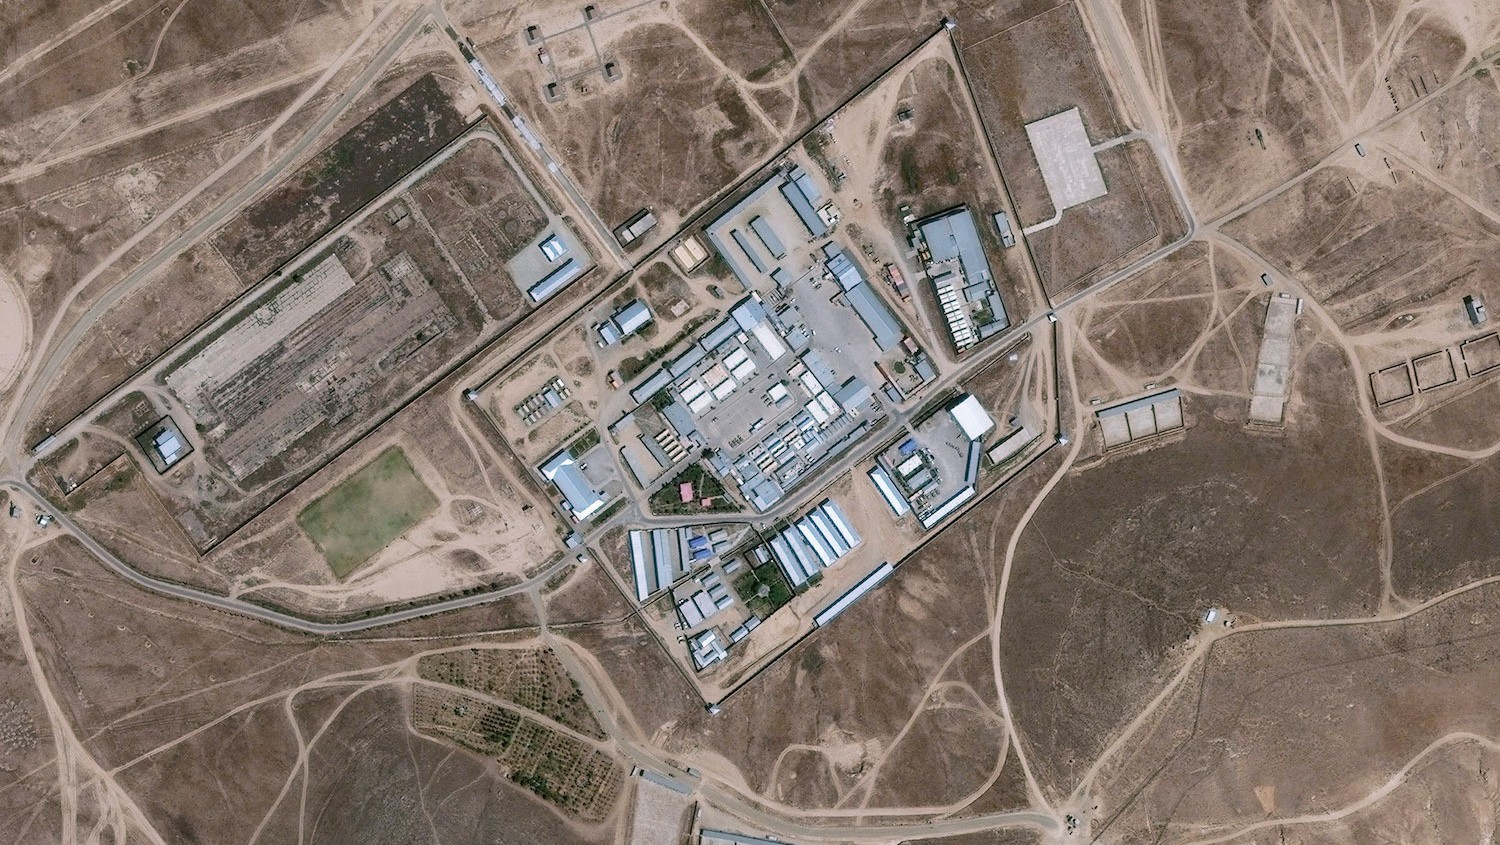 Barbaric Conditions That Led to a Detainee's Death Are Laid Bare in CIA Reports